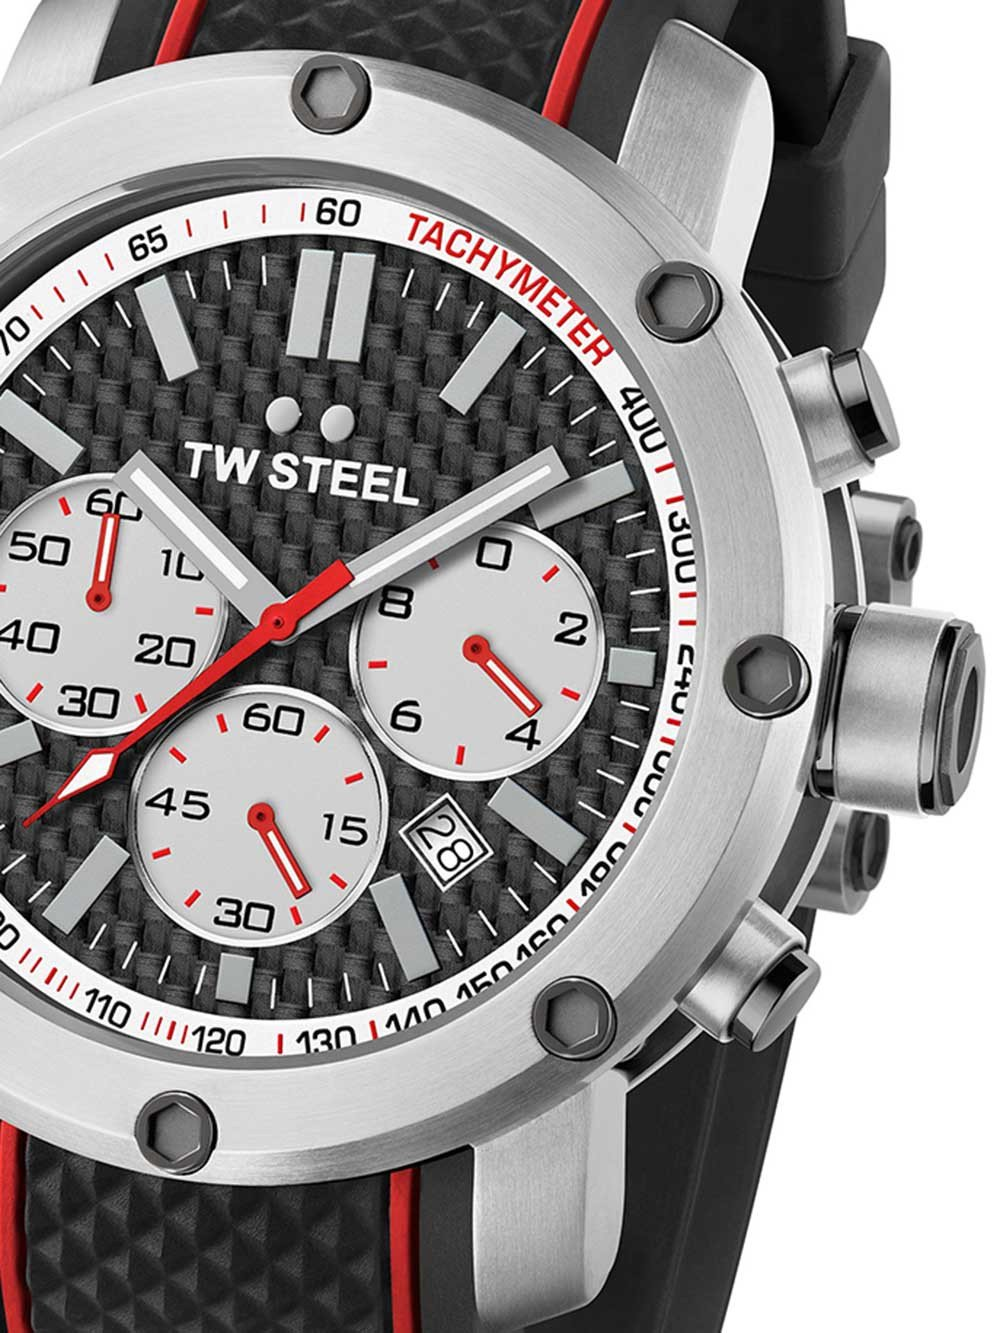 TW-Steel TS2 Grandeur Tech 48 mm 10ATM